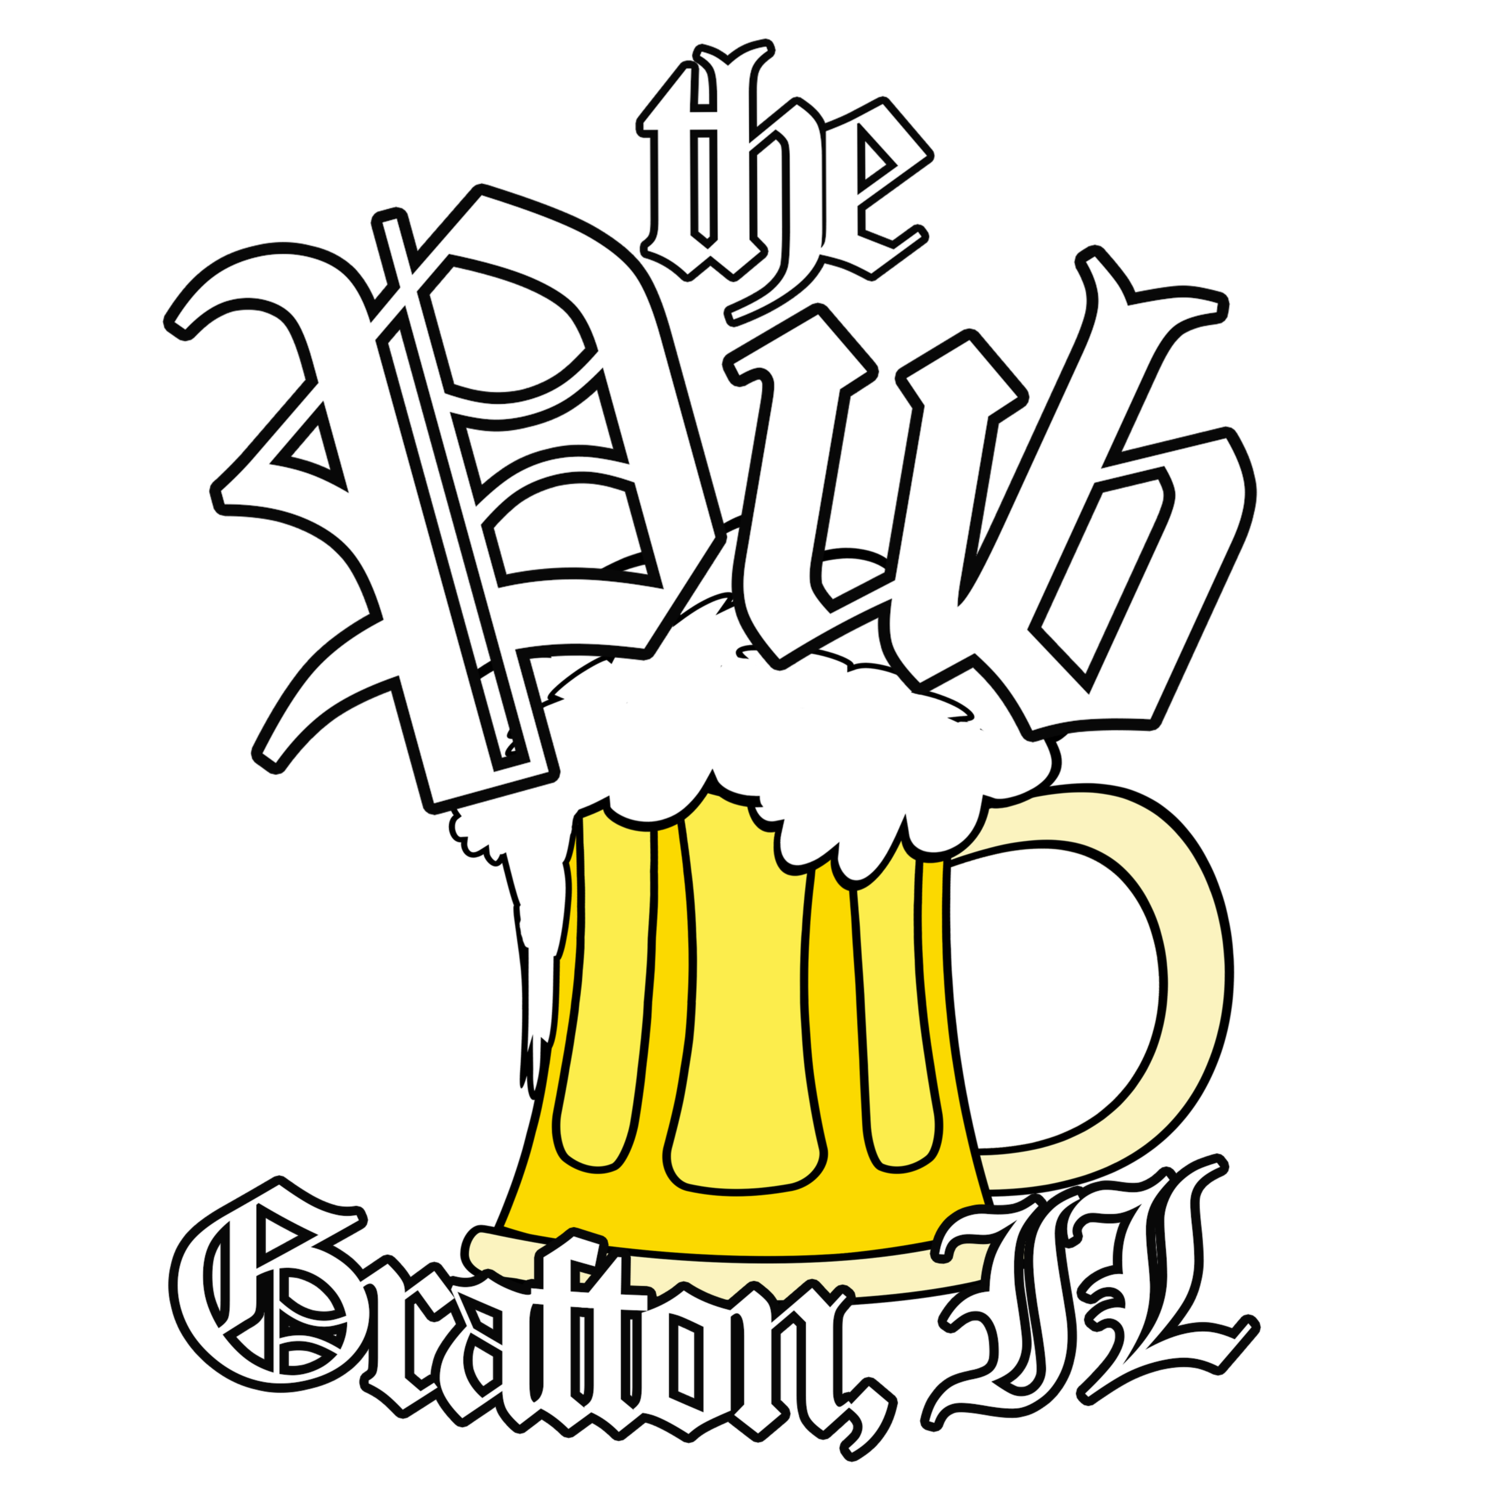 Grafton Pub | Grafton, IL | Food | Drink | Music | Fun